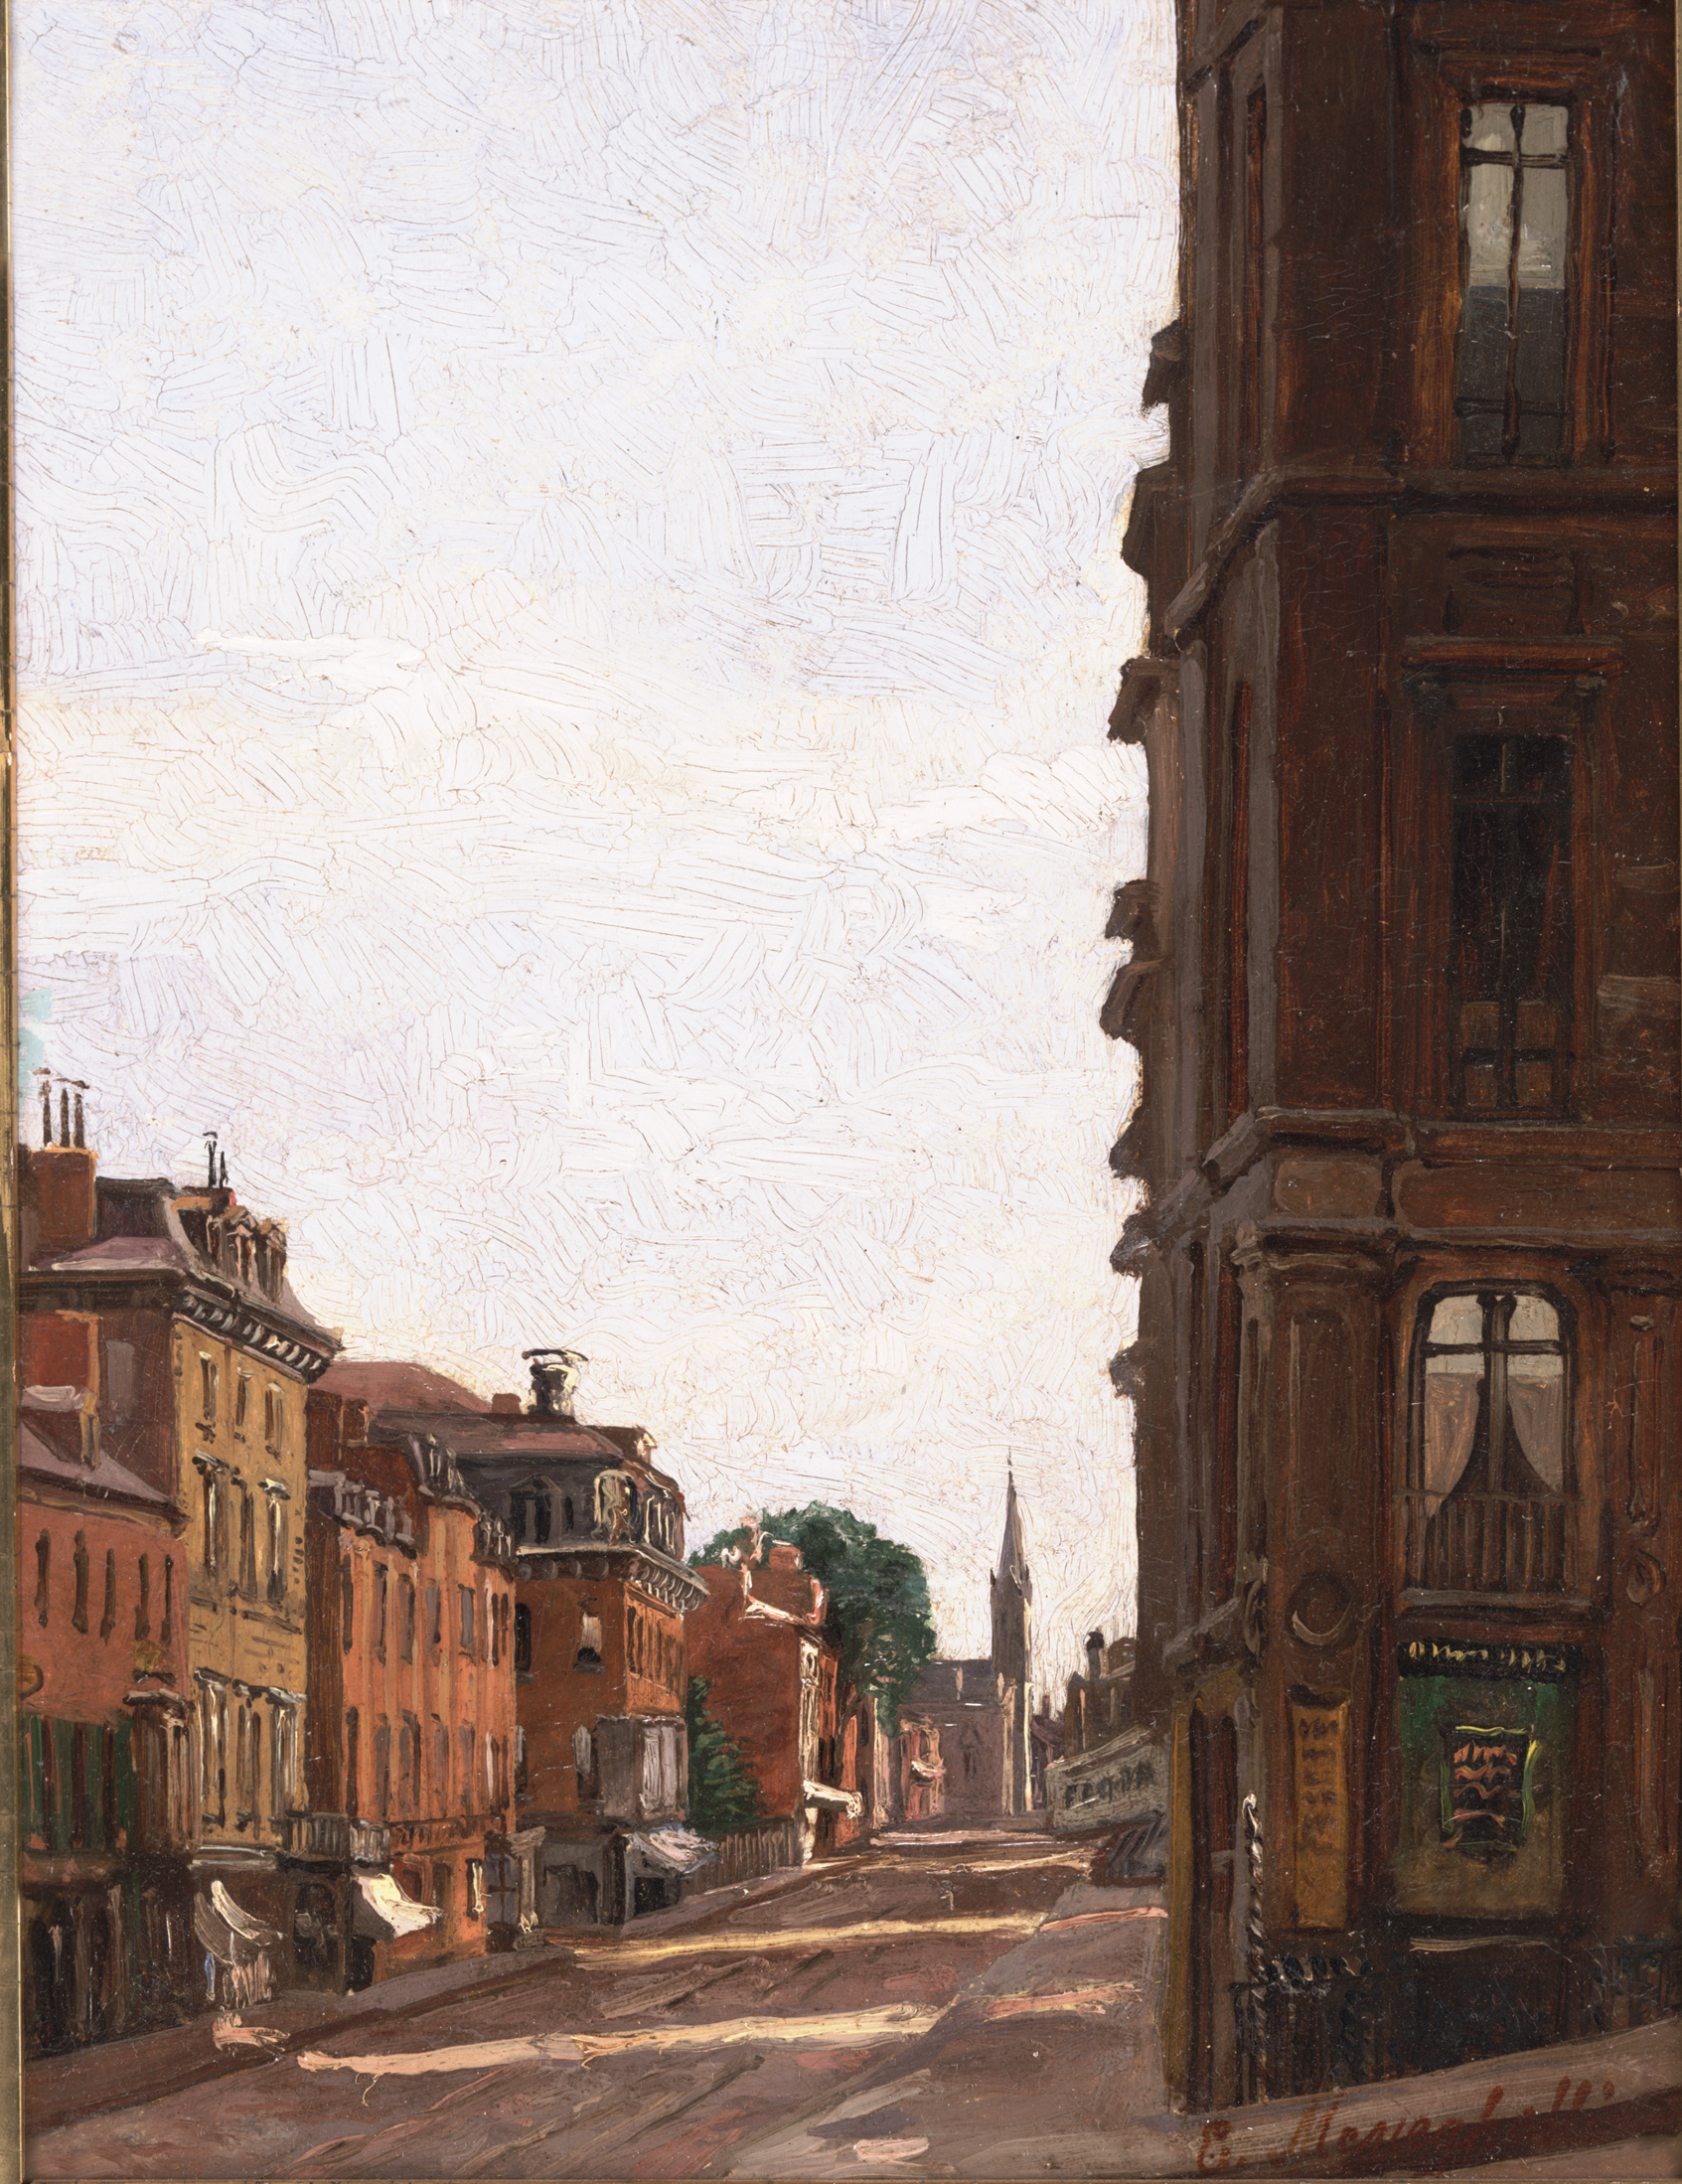 Streetscape To The North Of Hickory Click To Close: Boston Athenæum